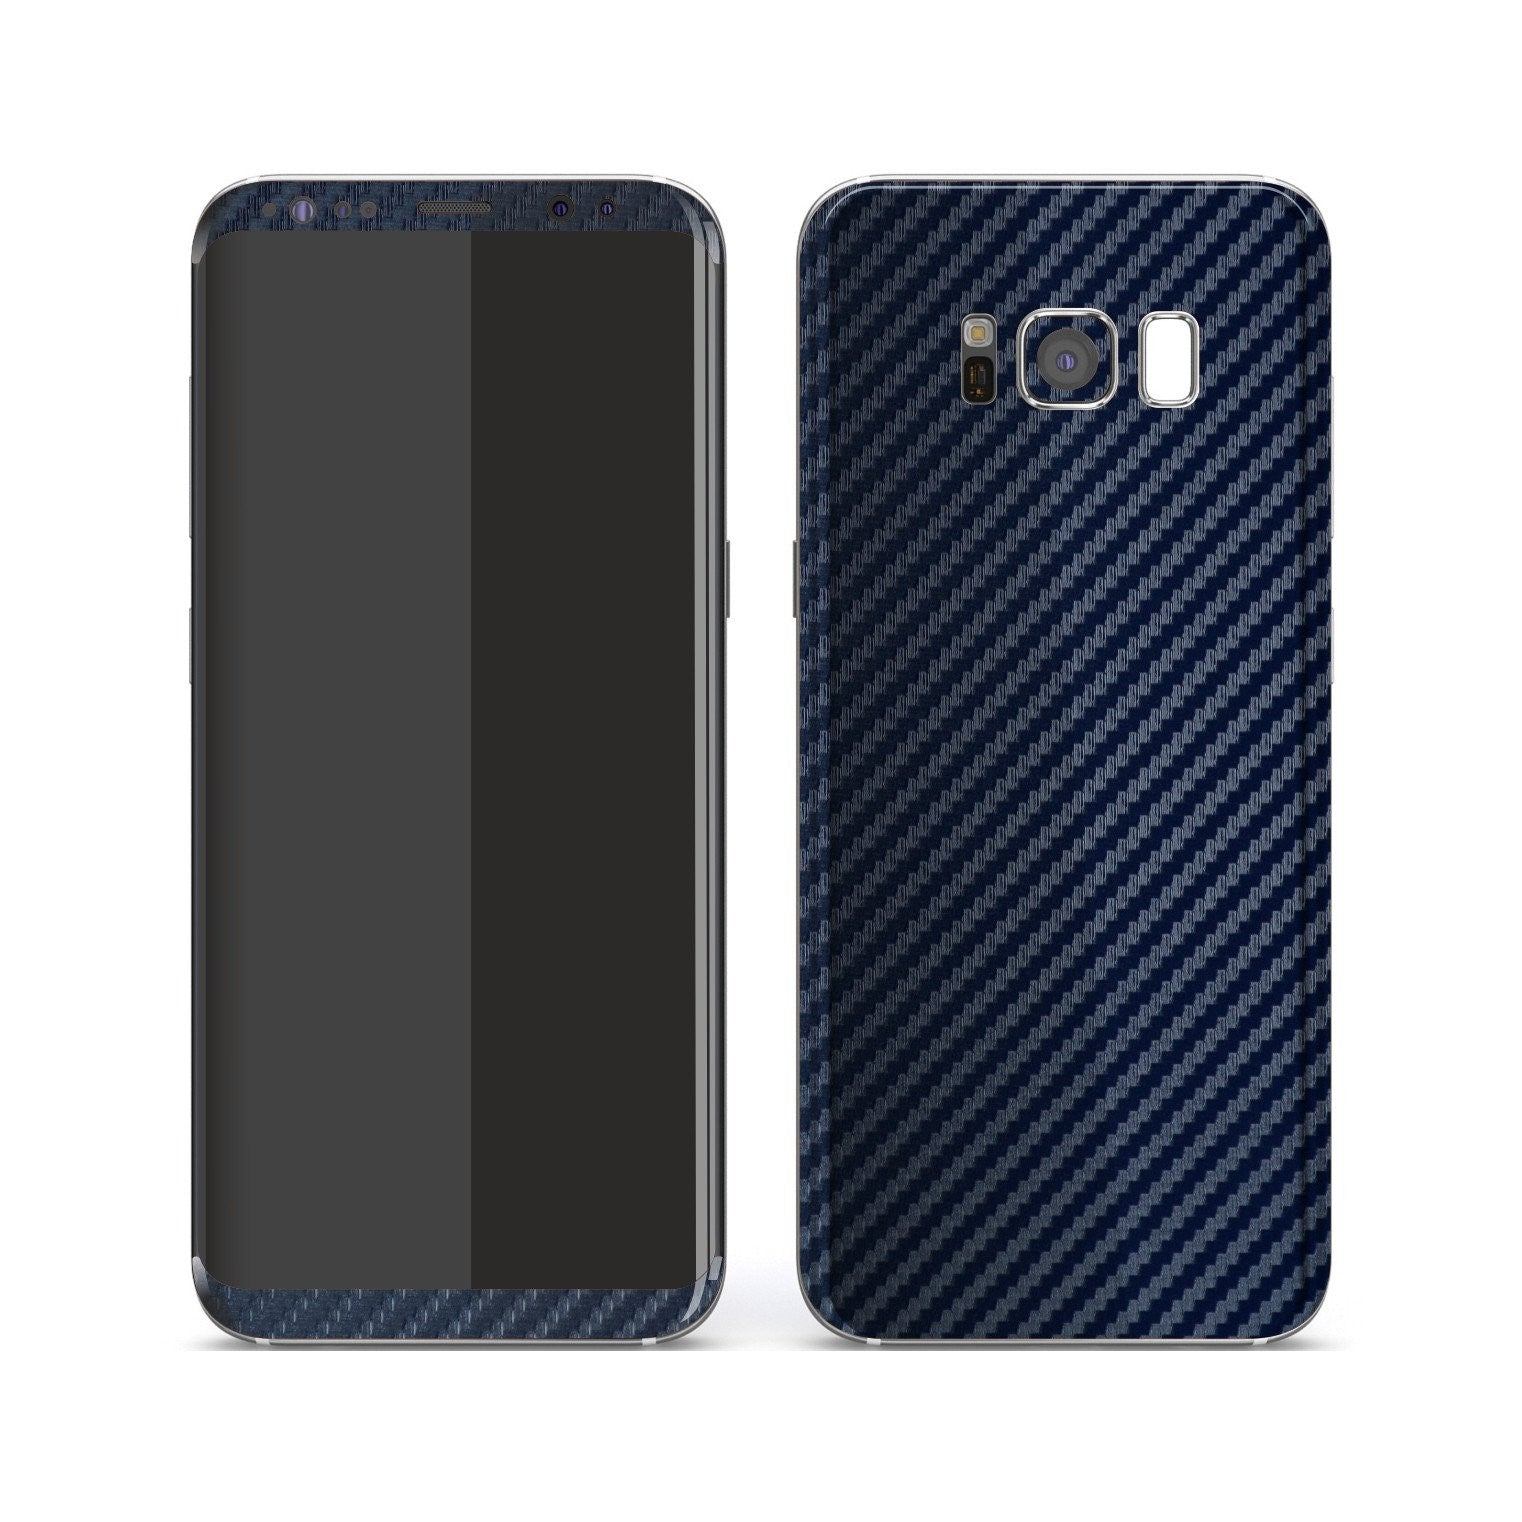 competitive price 92d51 f00e0 Samsung Galaxy S8 3D Textured CARBON Fibre Skin - Navy Blue